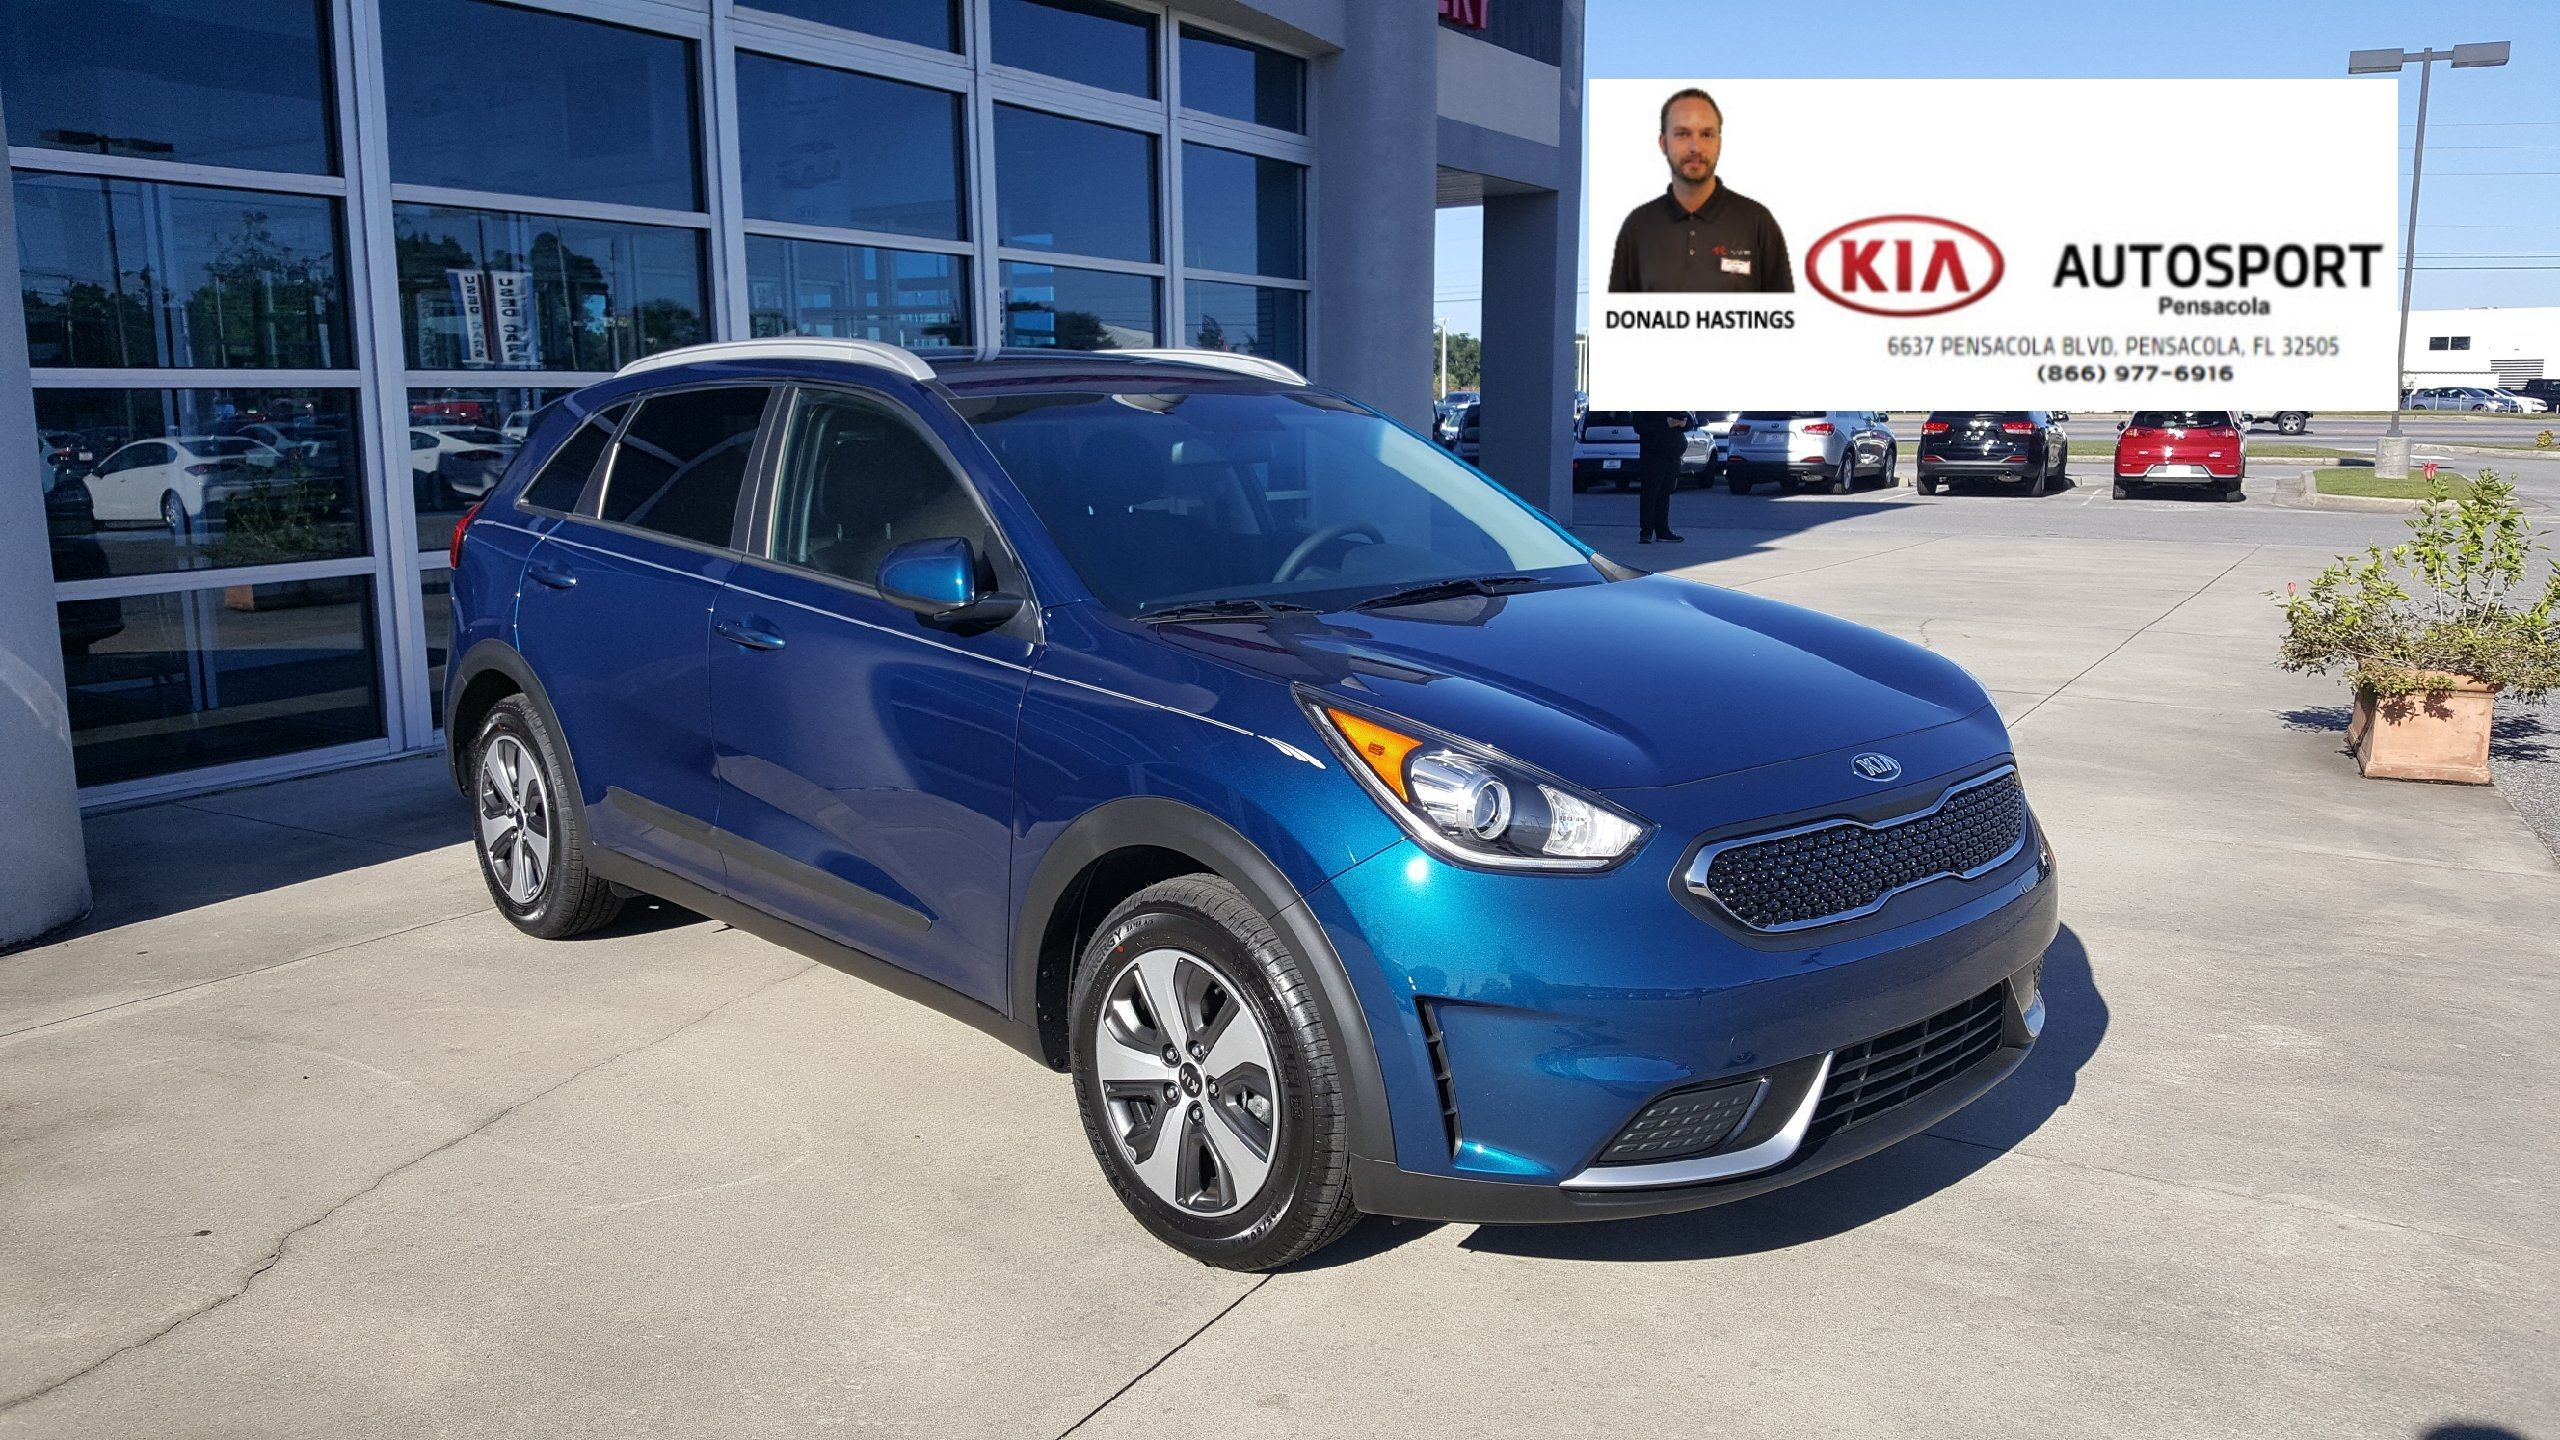 Donald Hastings And KIA AutoSport Of Pensacola Would Like To Thank The  Schrier On The Purchase